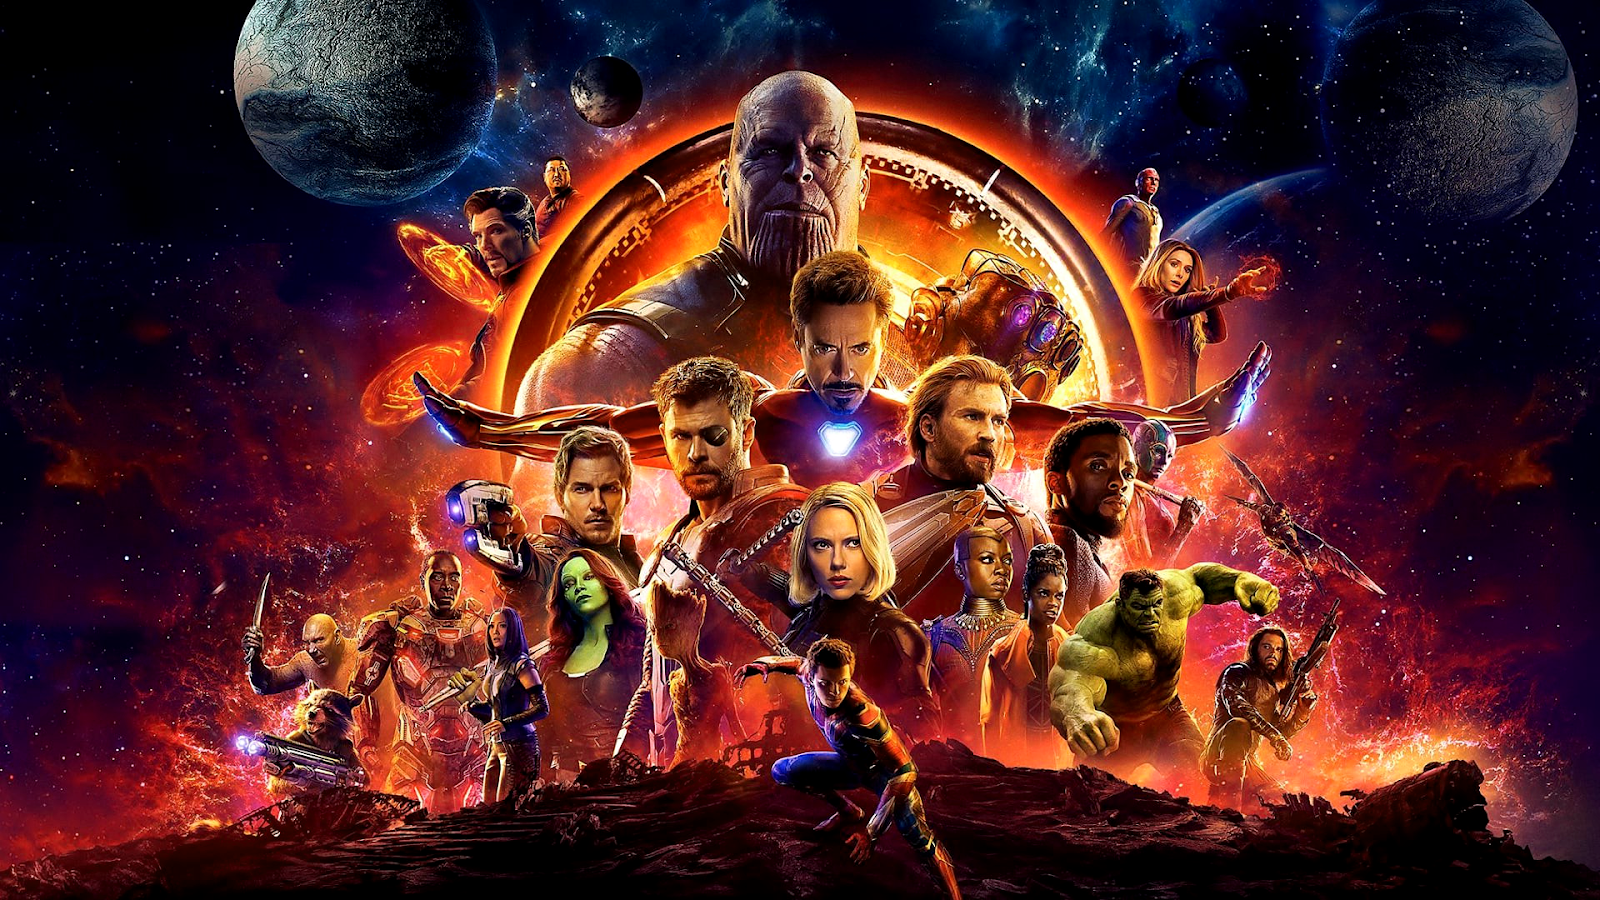 Avengers: Infinity War - 1920x1080 Wallpapers - Full HD Backgrounds